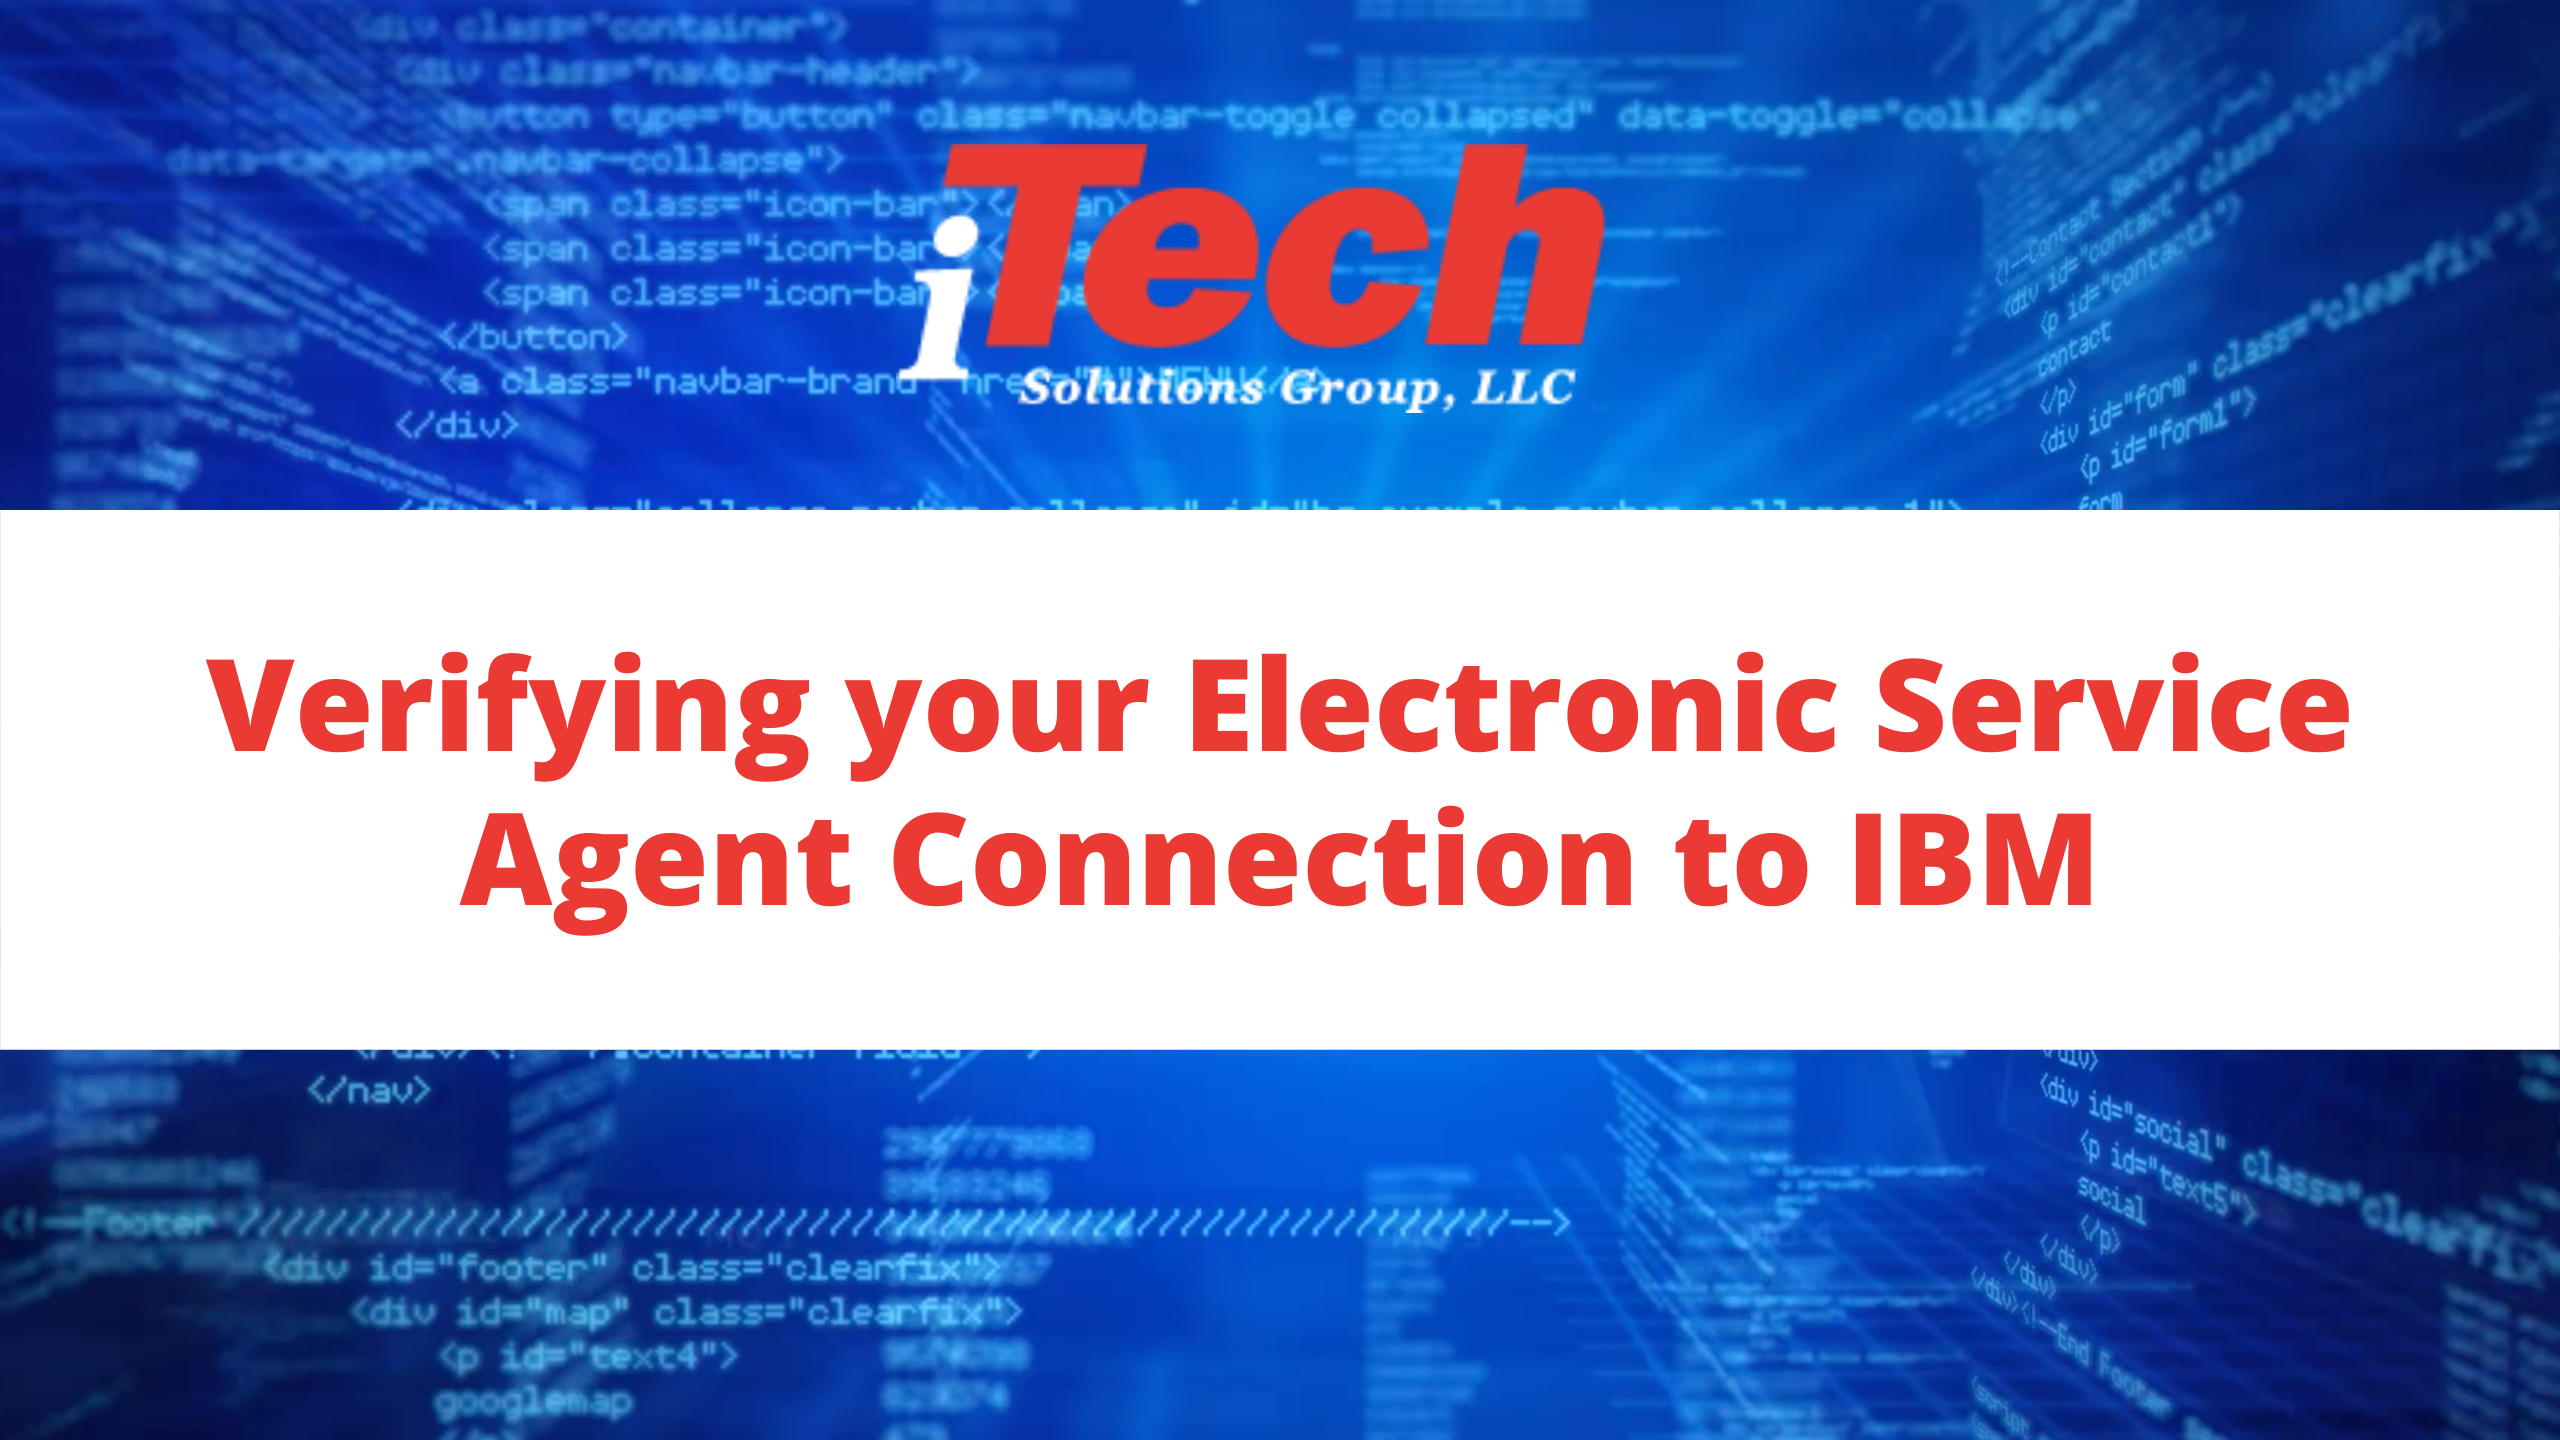 Verifying your Electronic Service Agent Connection to IBM